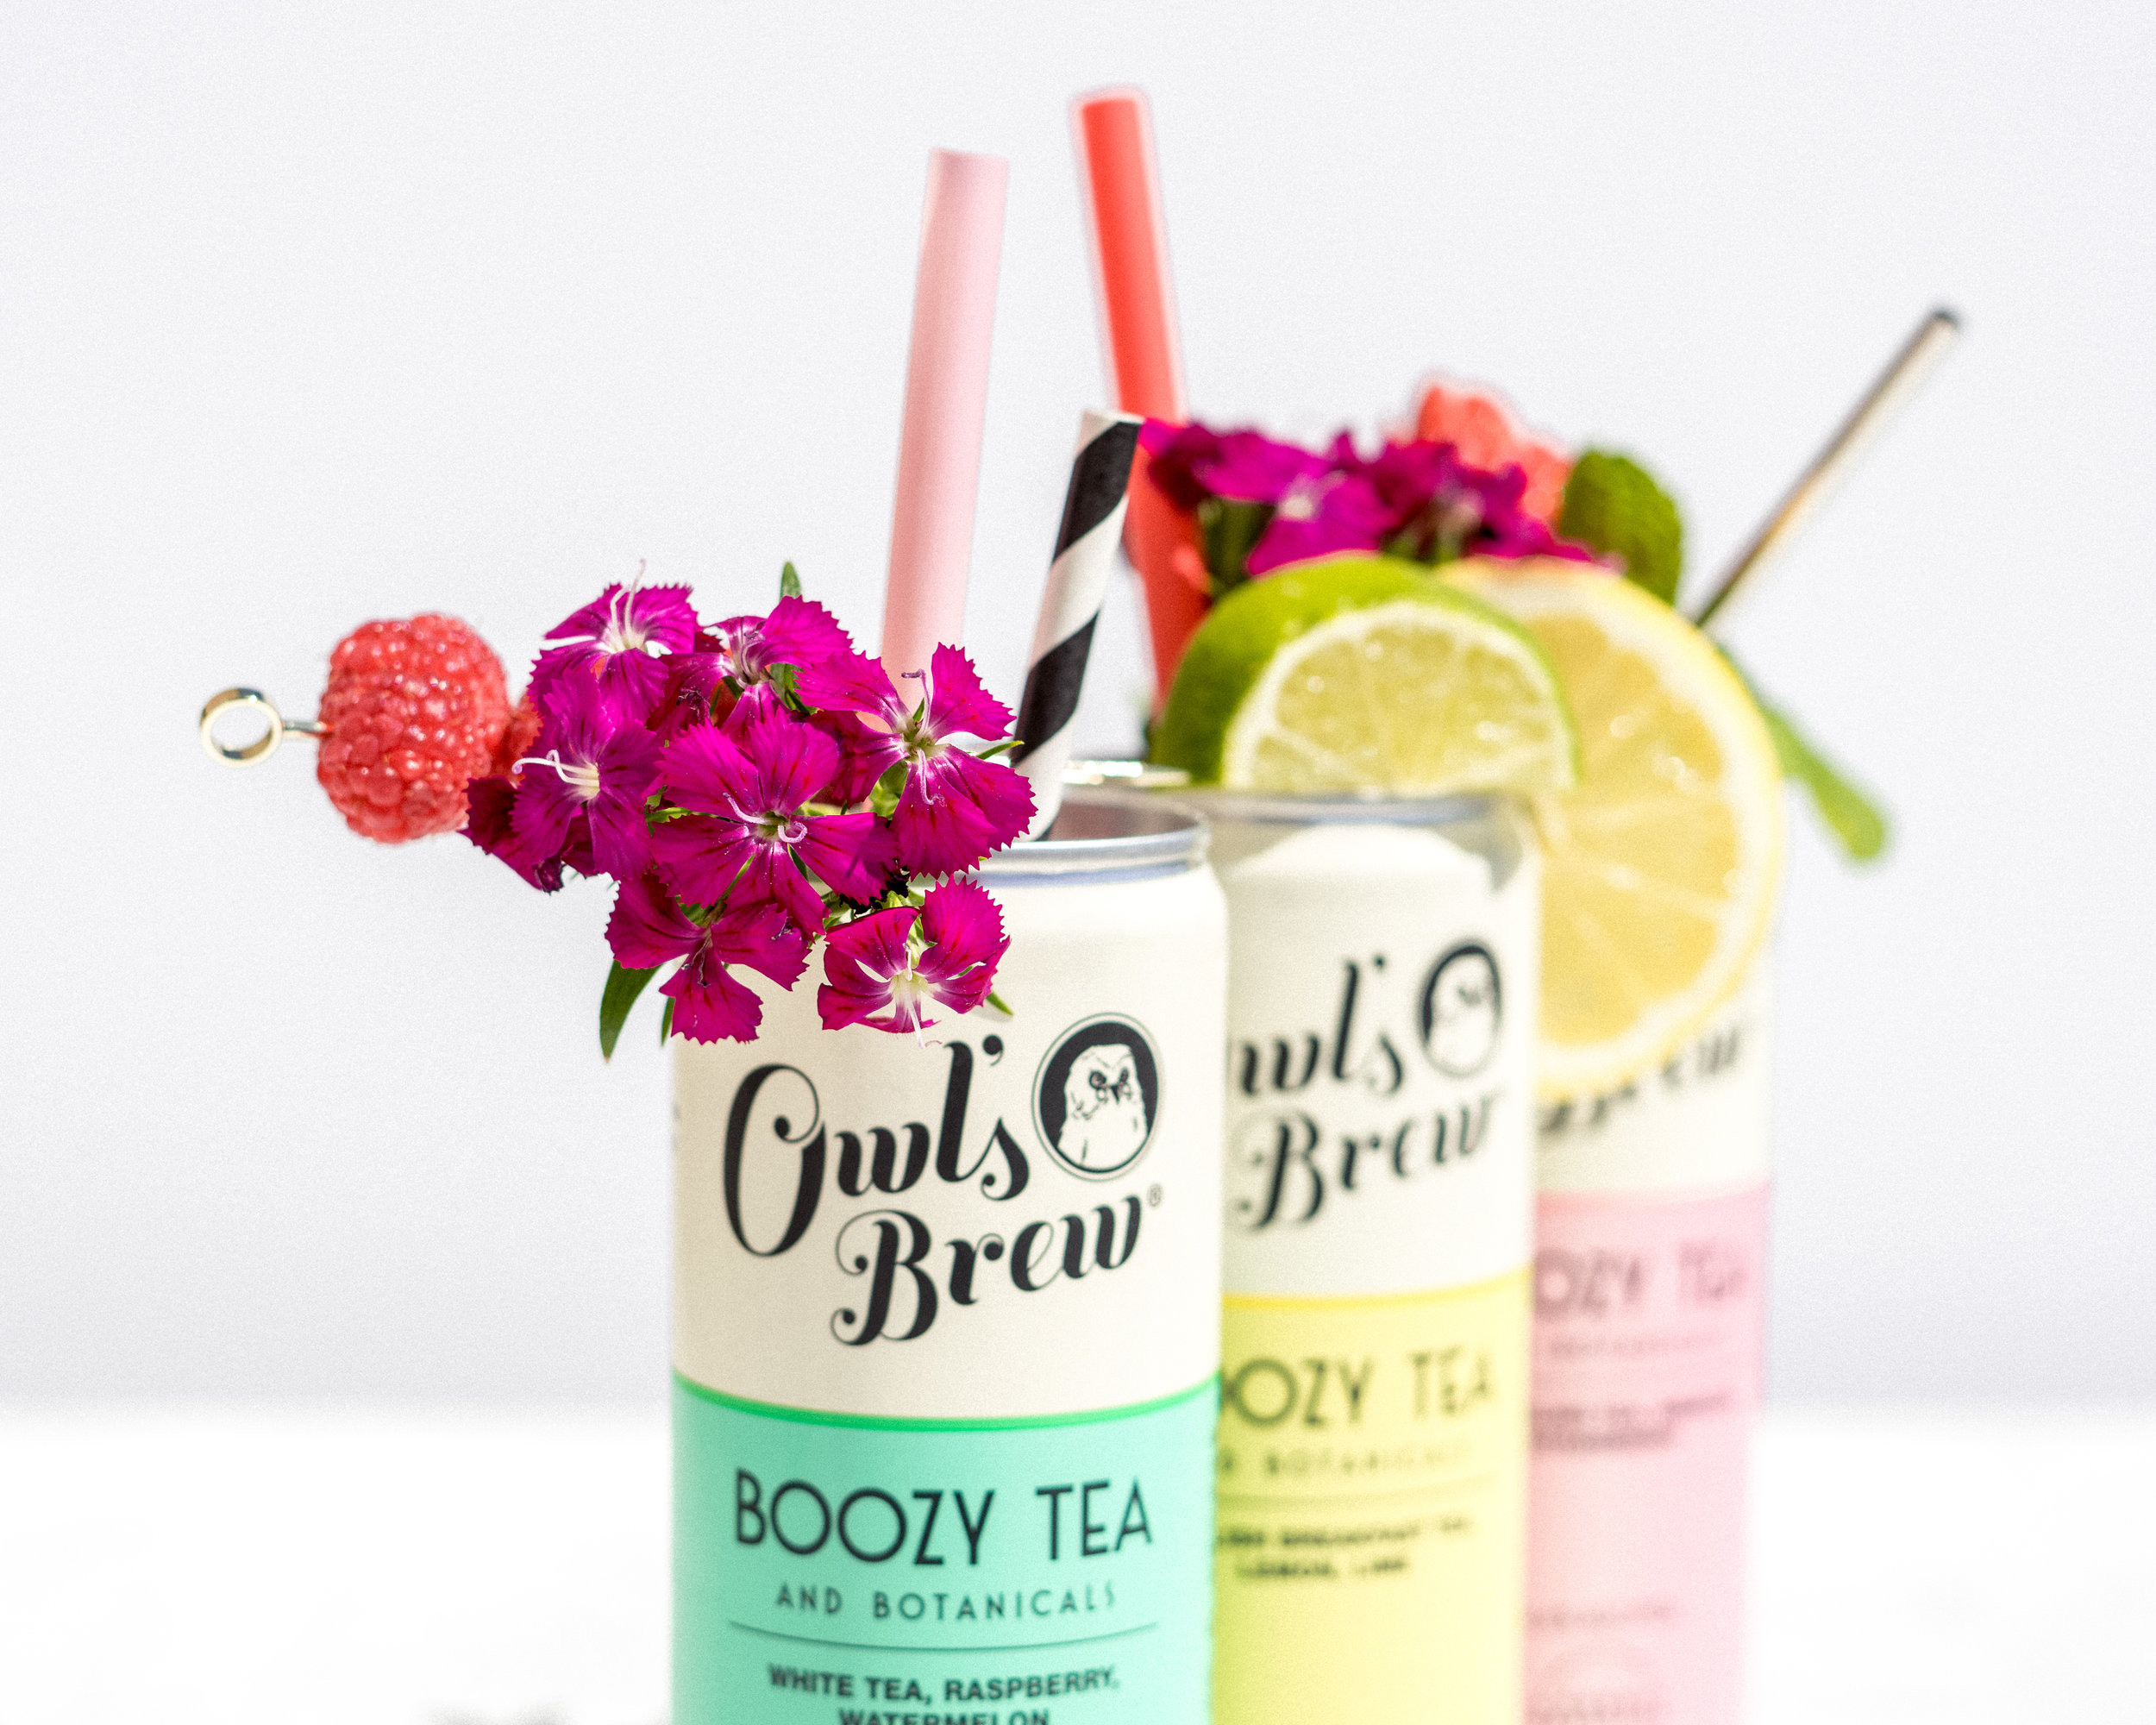 Boozy Canned Tea Cocktail - The Owl's Brew